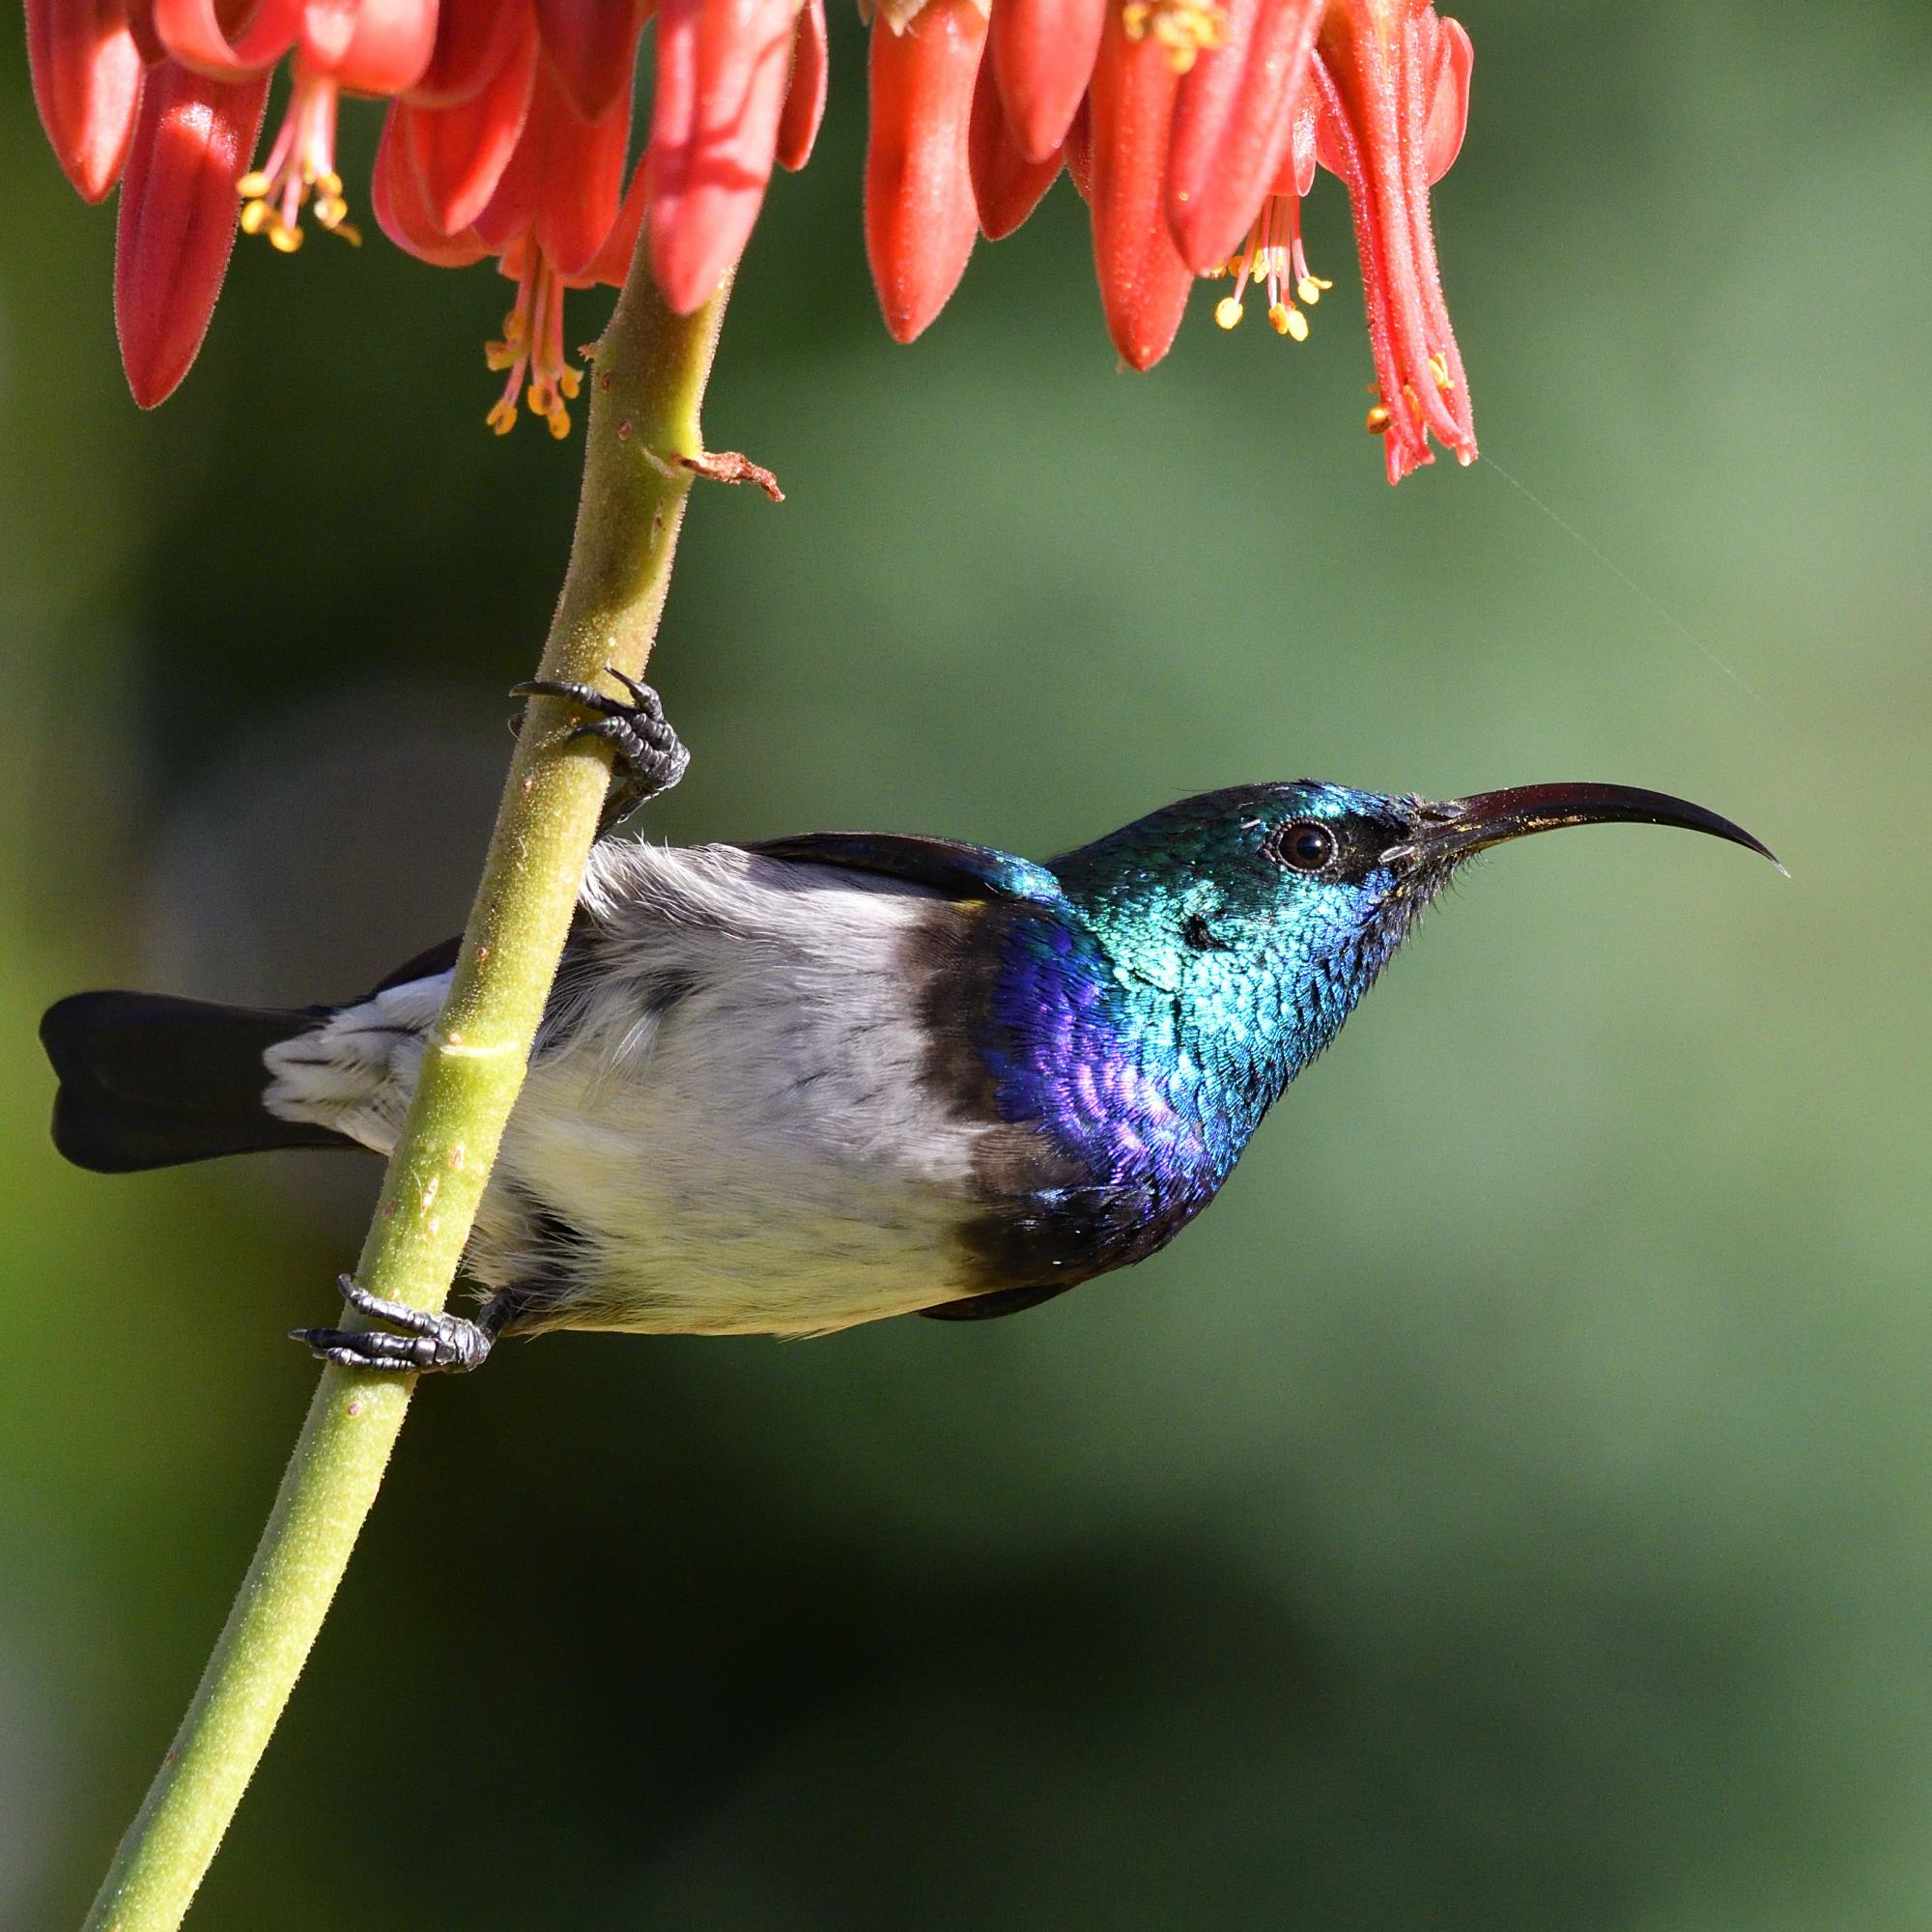 Male White Breasted Sunbird